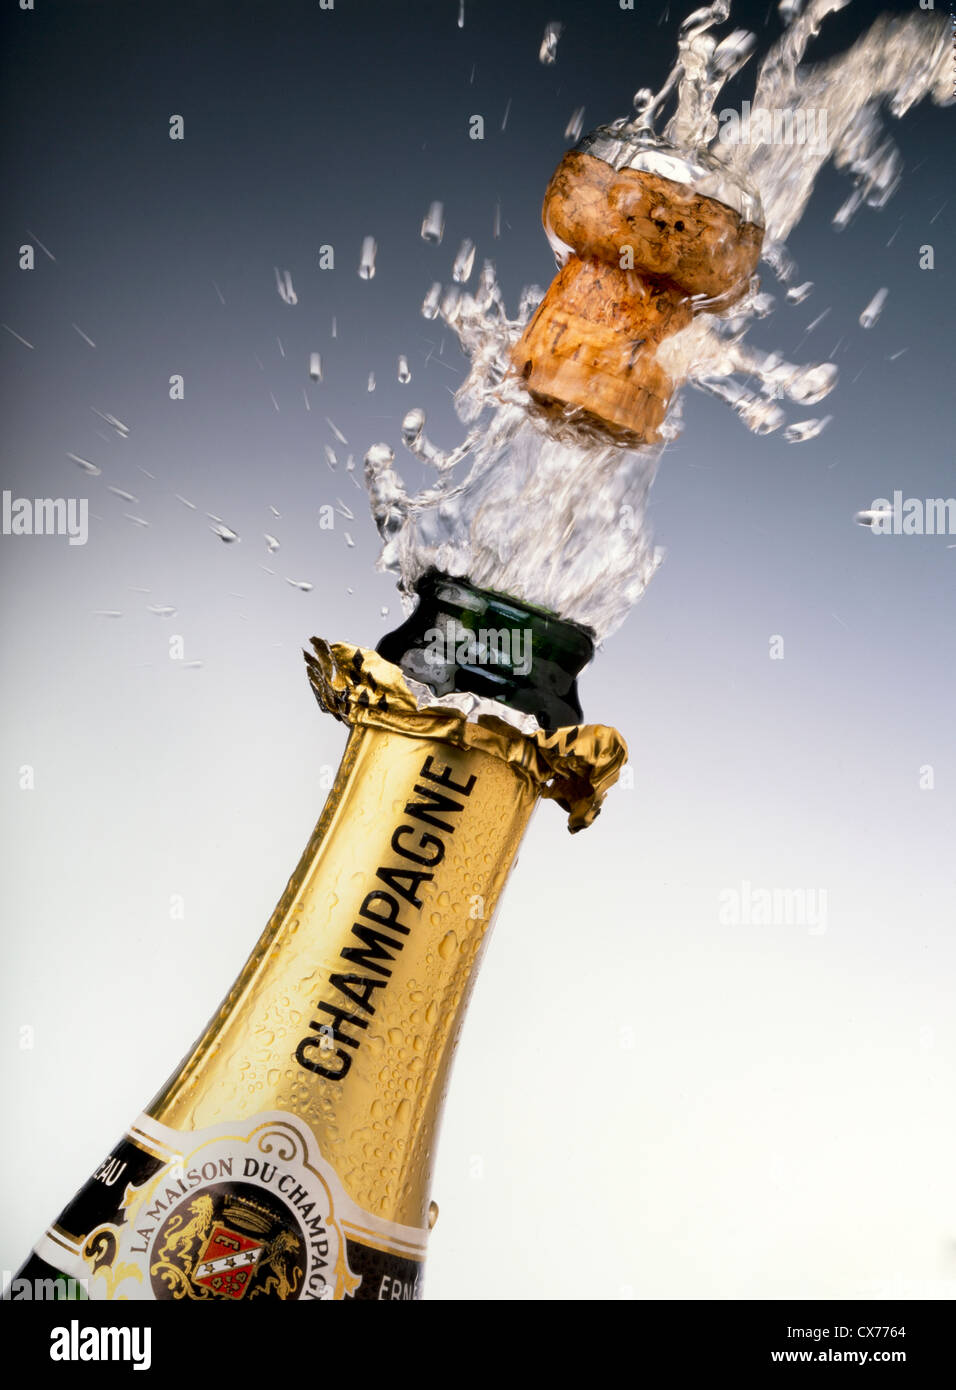 CHAMPAGNE BOTTLE WITH CORK POPPING - Stock Image